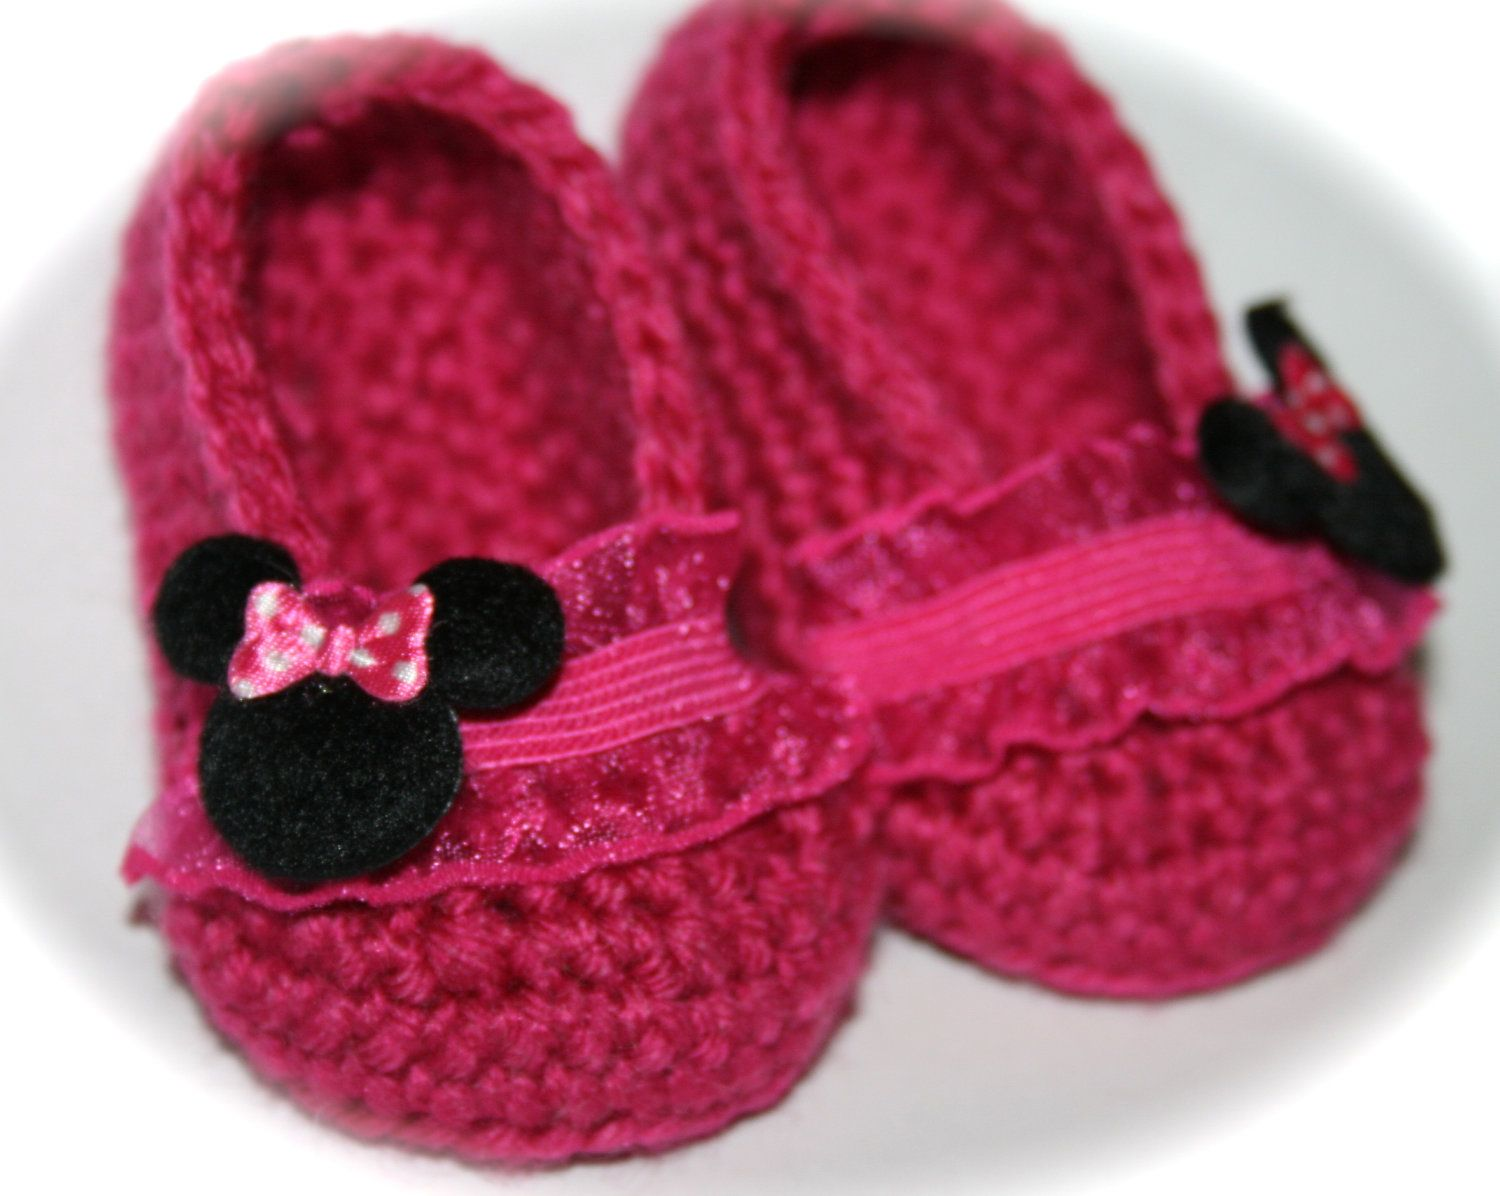 b67ead20e3744 Crochet Baby shoes booties slippers ballet slippers baby girl raspberry hot  pink fuchsia minnie mouse disney world mickey mouse.  20.00